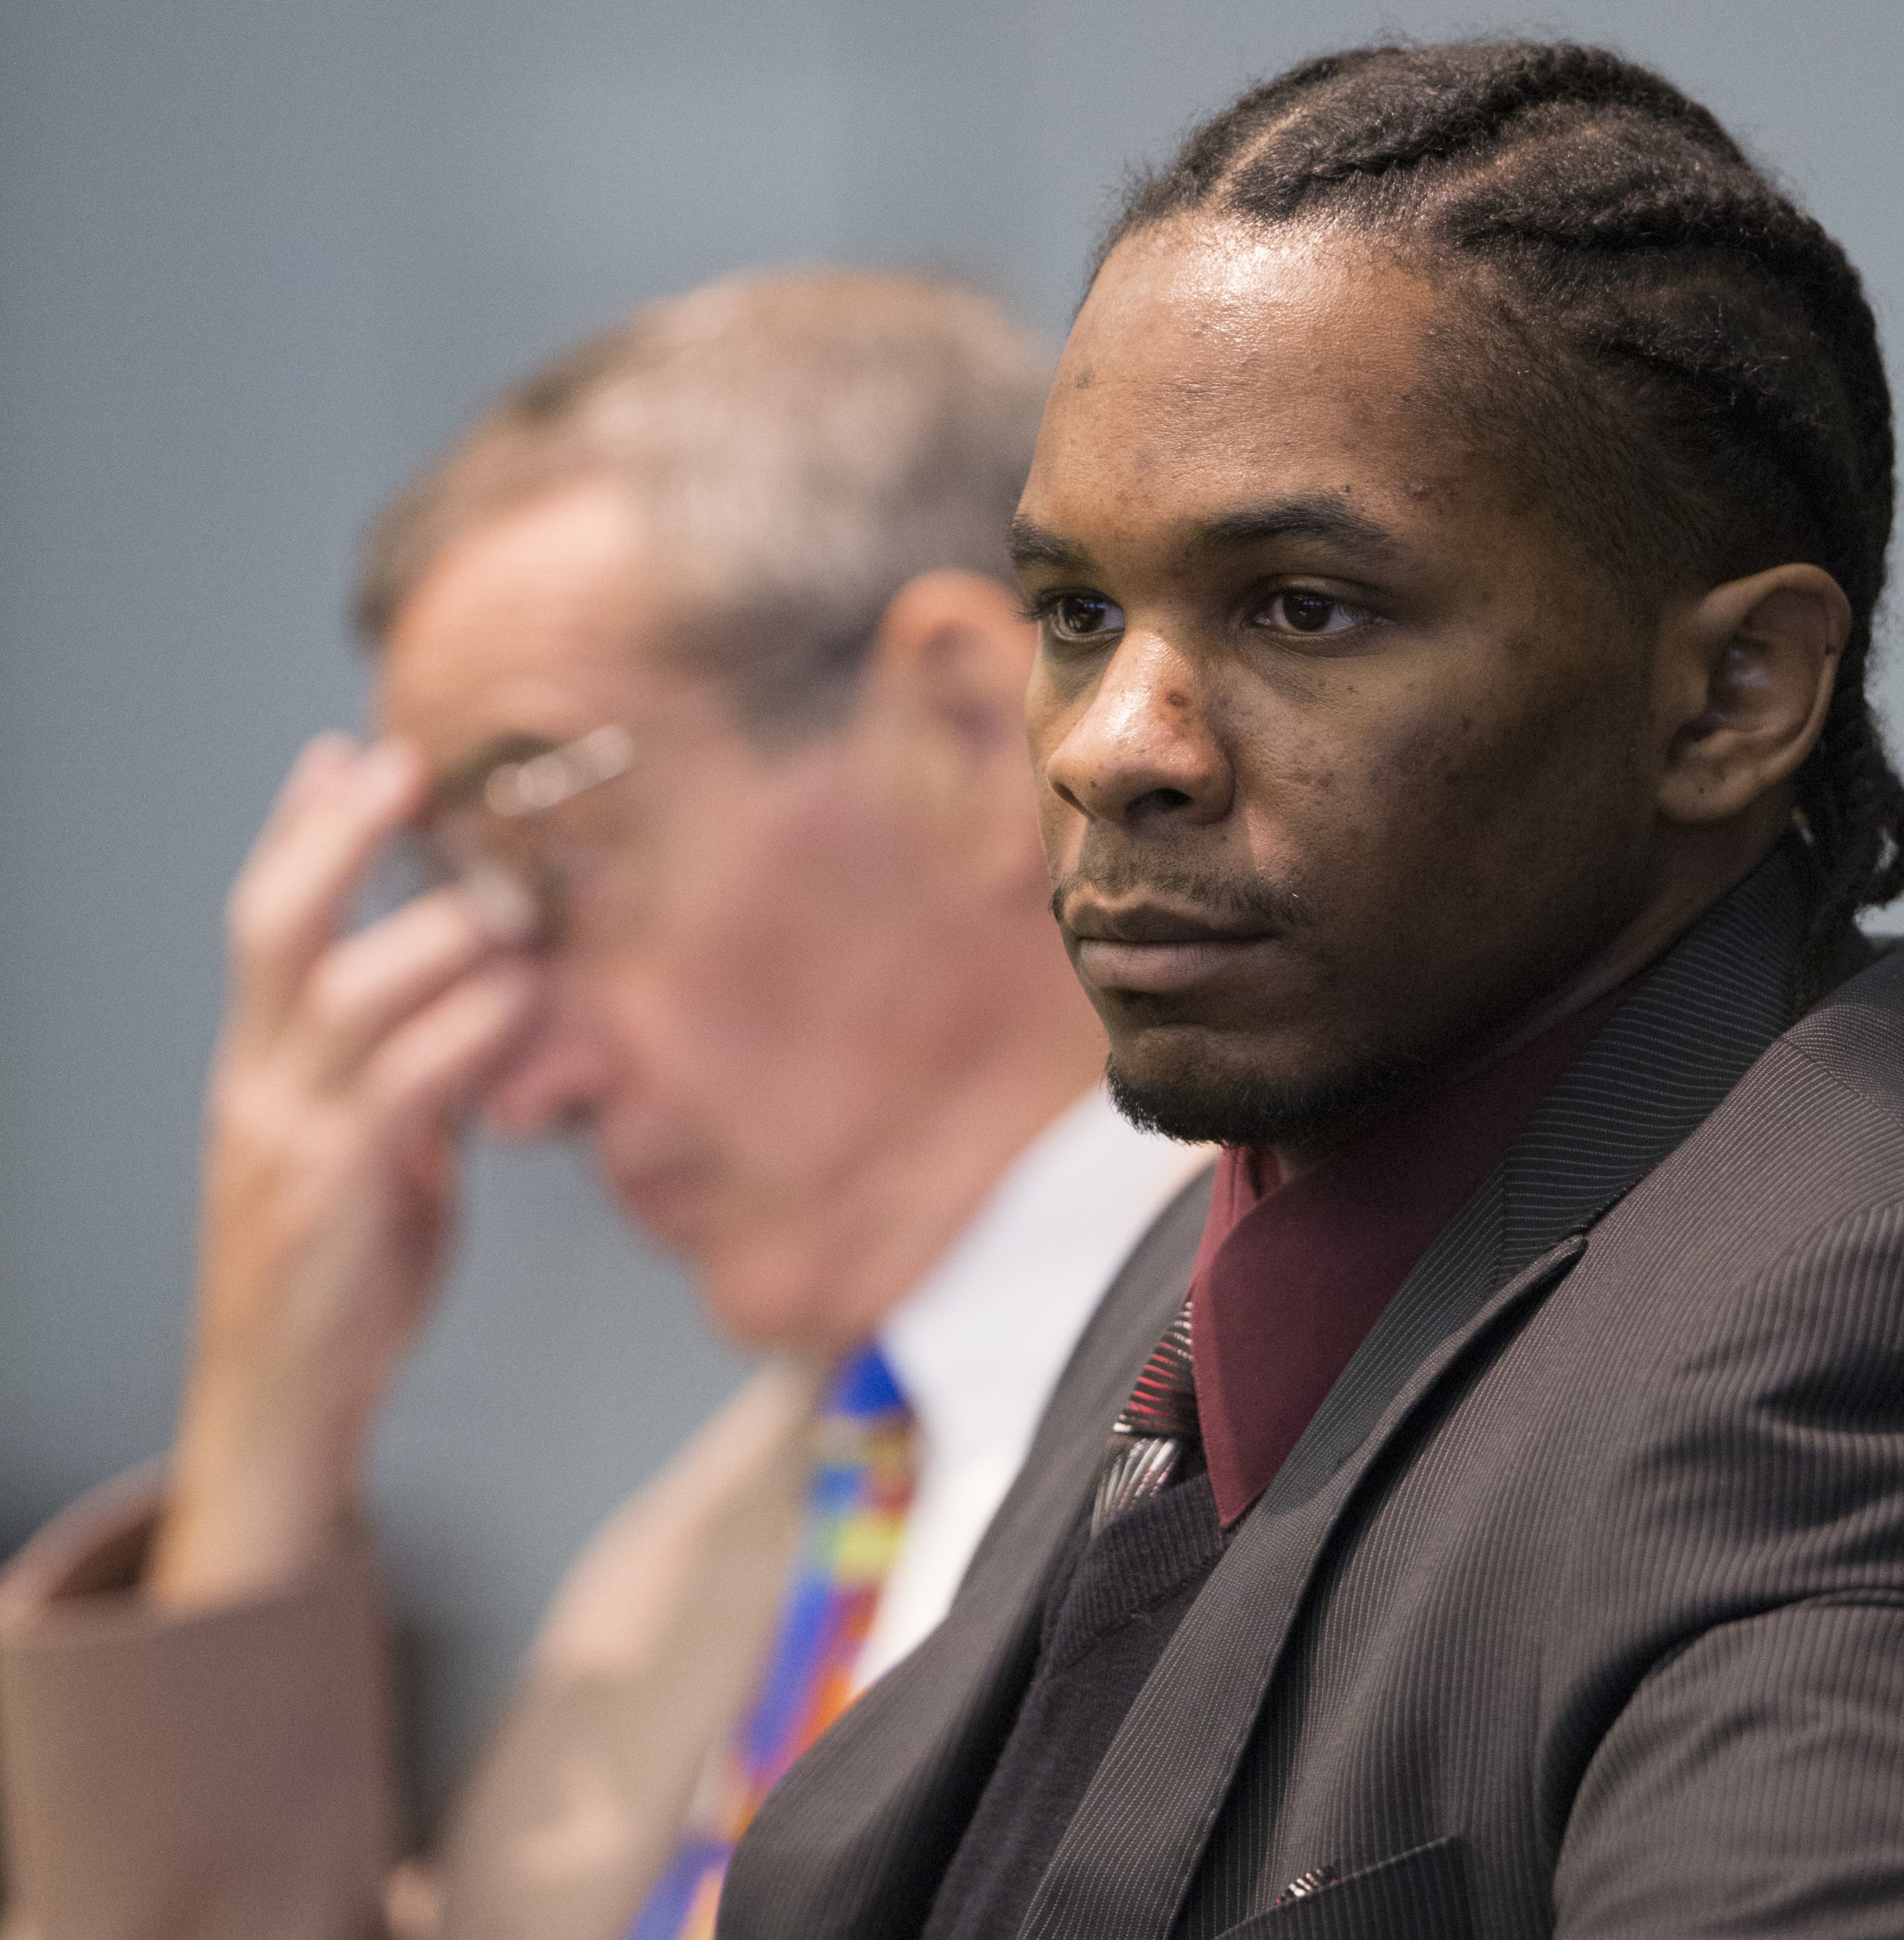 Friday: Defense attorney Kevin Bradley, left, and defendant Laurence Lovette listen to the opening statements in Durham Superior Court on Friday, July 18, 2014 in Durham. Lovette is accused of murdering Abhijit Mahato, a Duke grad student in 2008.